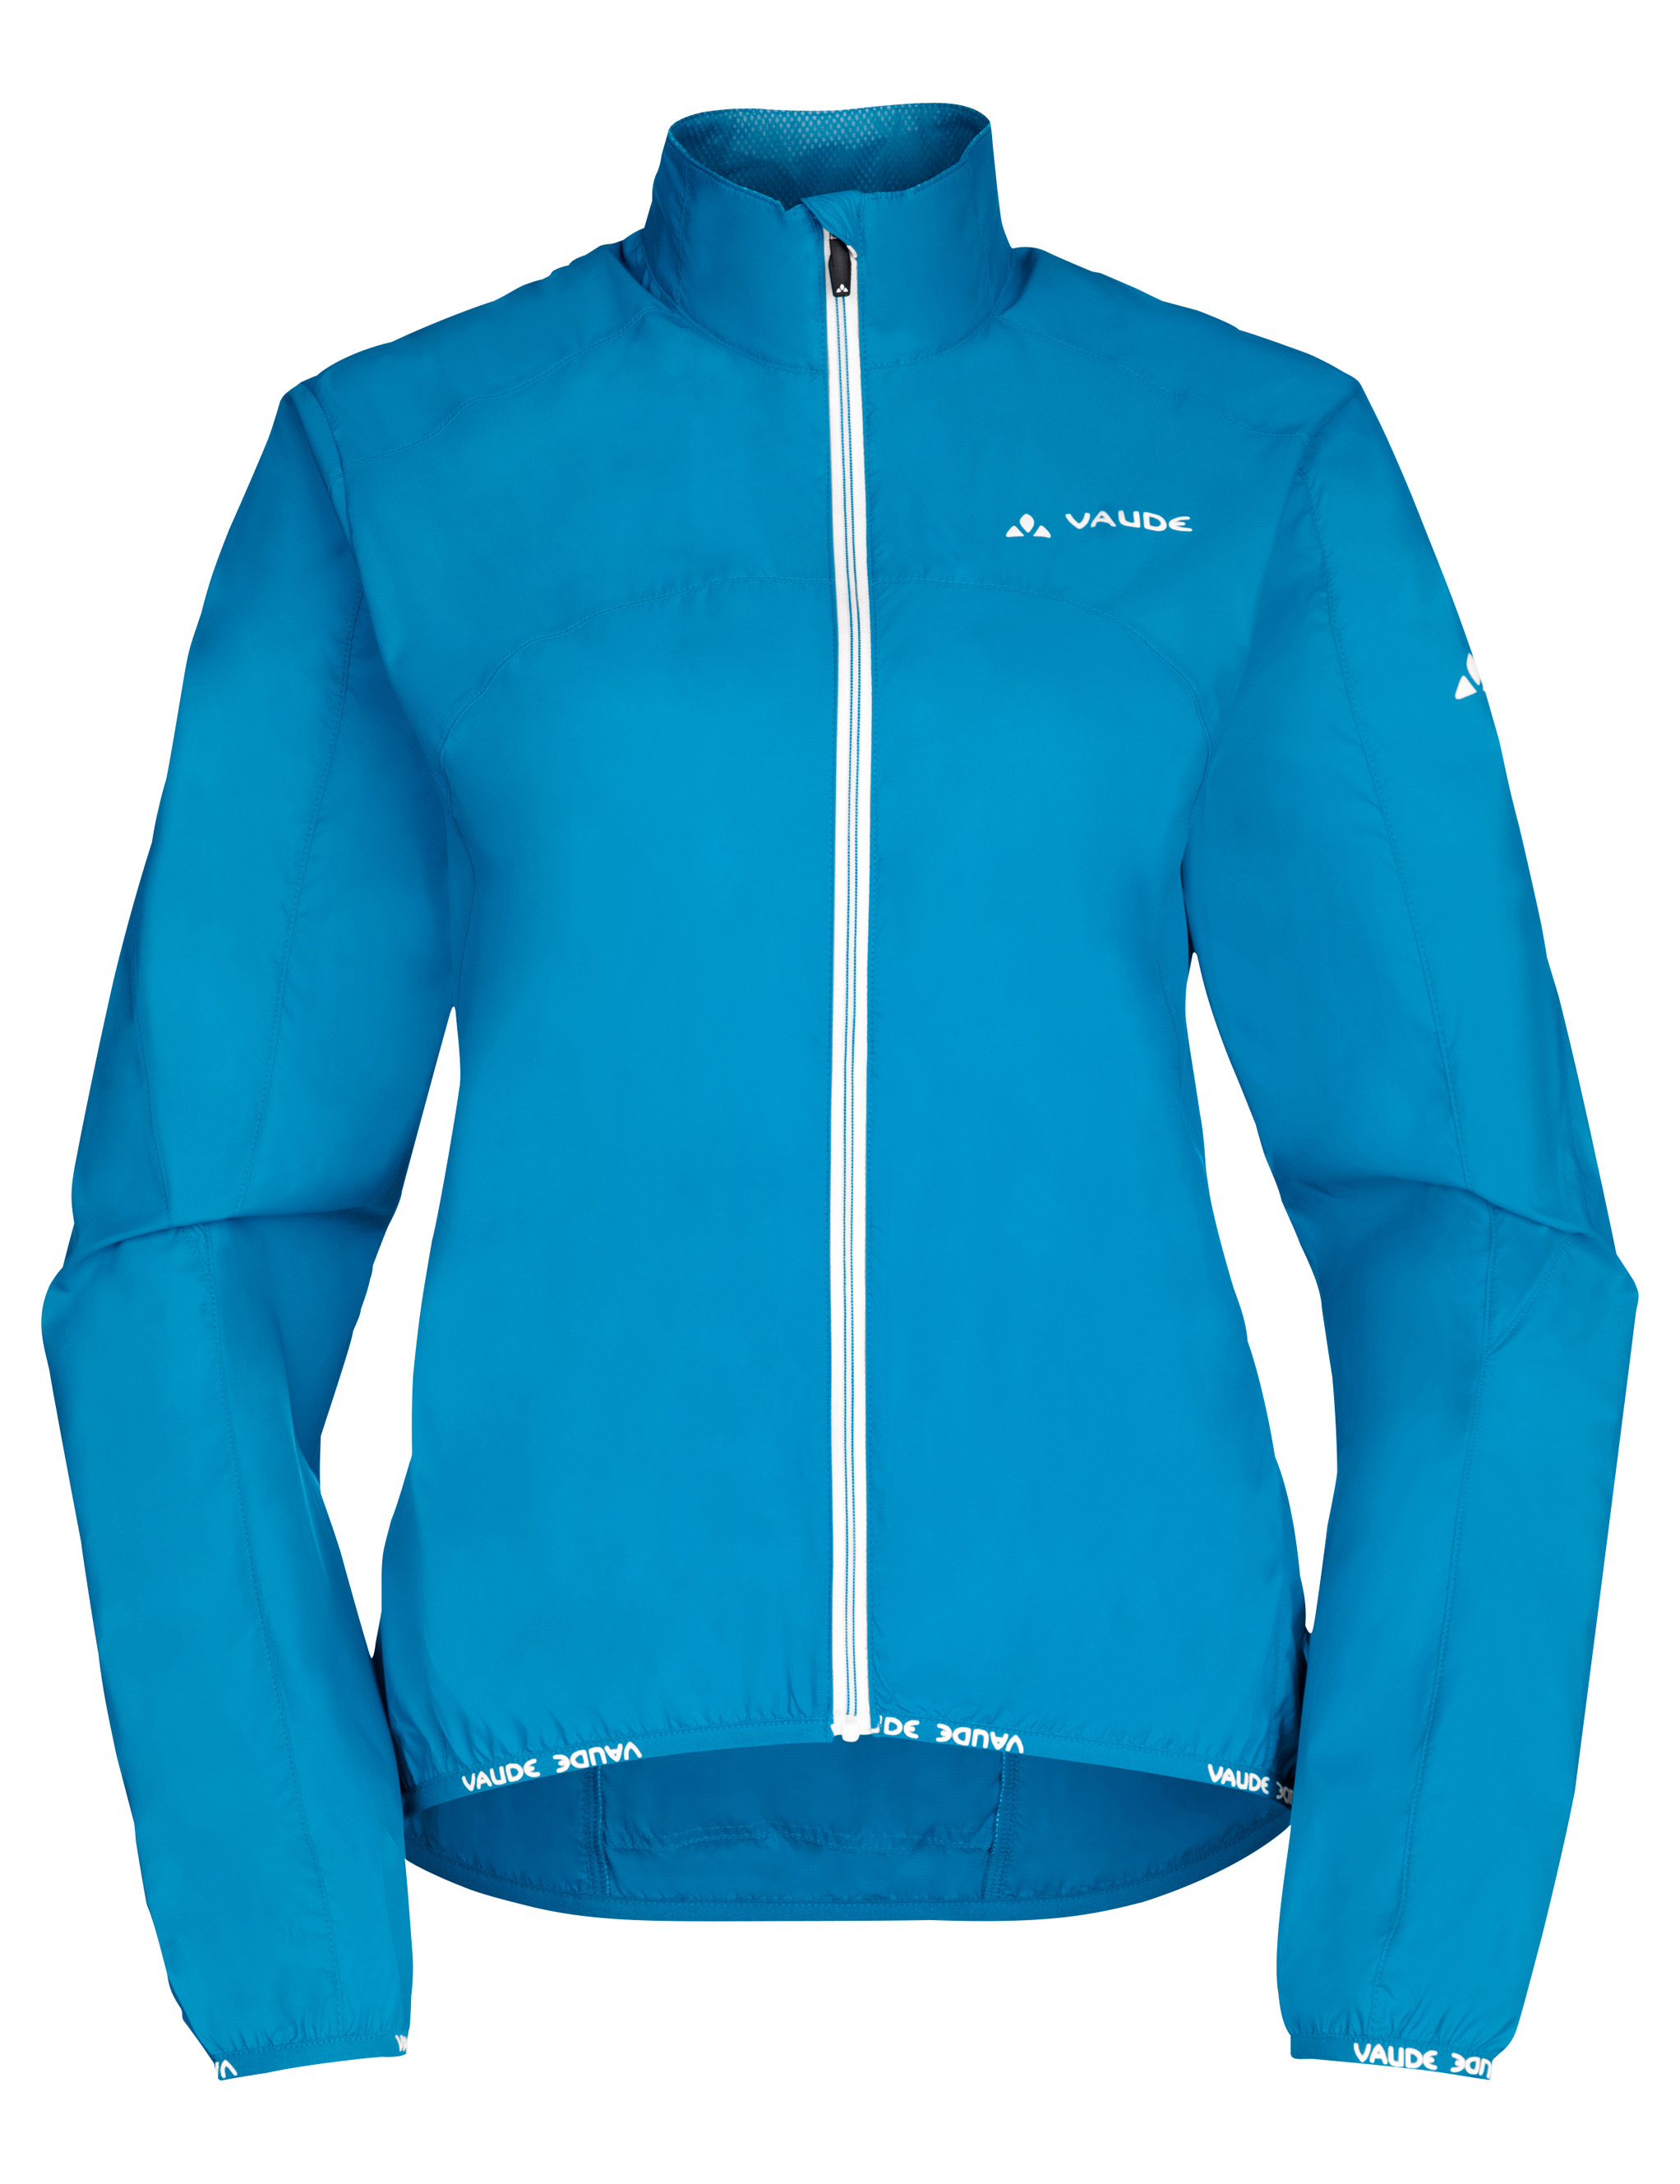 VAUDE Women´s Air Jacket II spring blue Größe 34 - schneider-sports